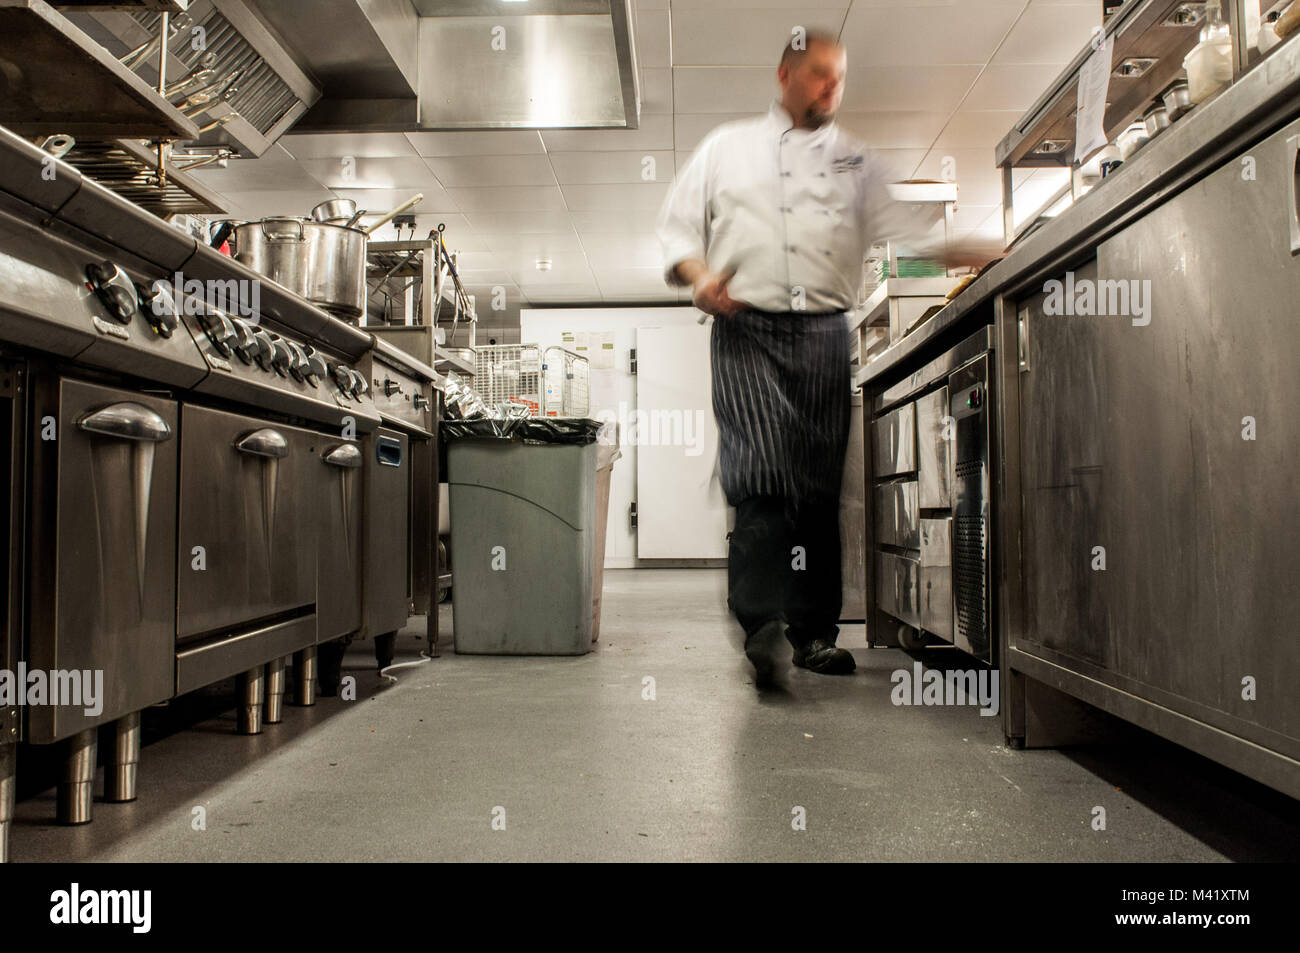 A photo with motion blur of a chef moving quickly in a restaurant kitchen - Stock Image